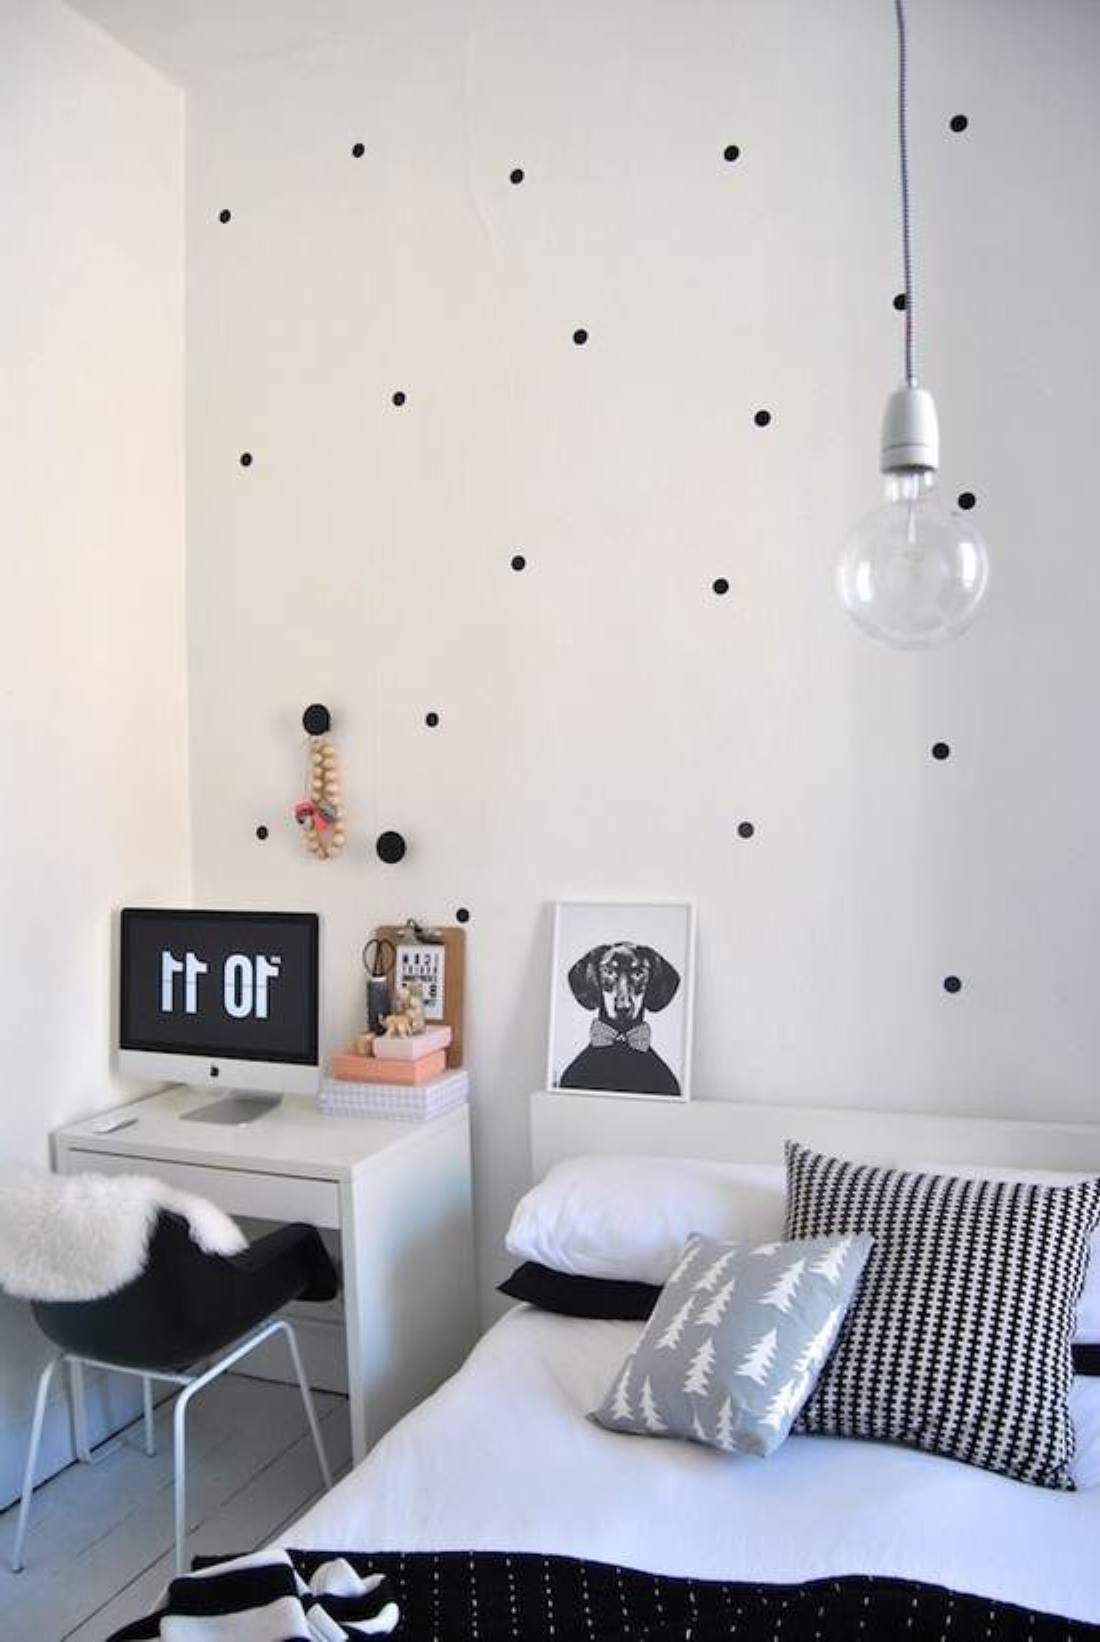 Bedroom Ideas Young Women black white simple bedroom decorating ideas for young women